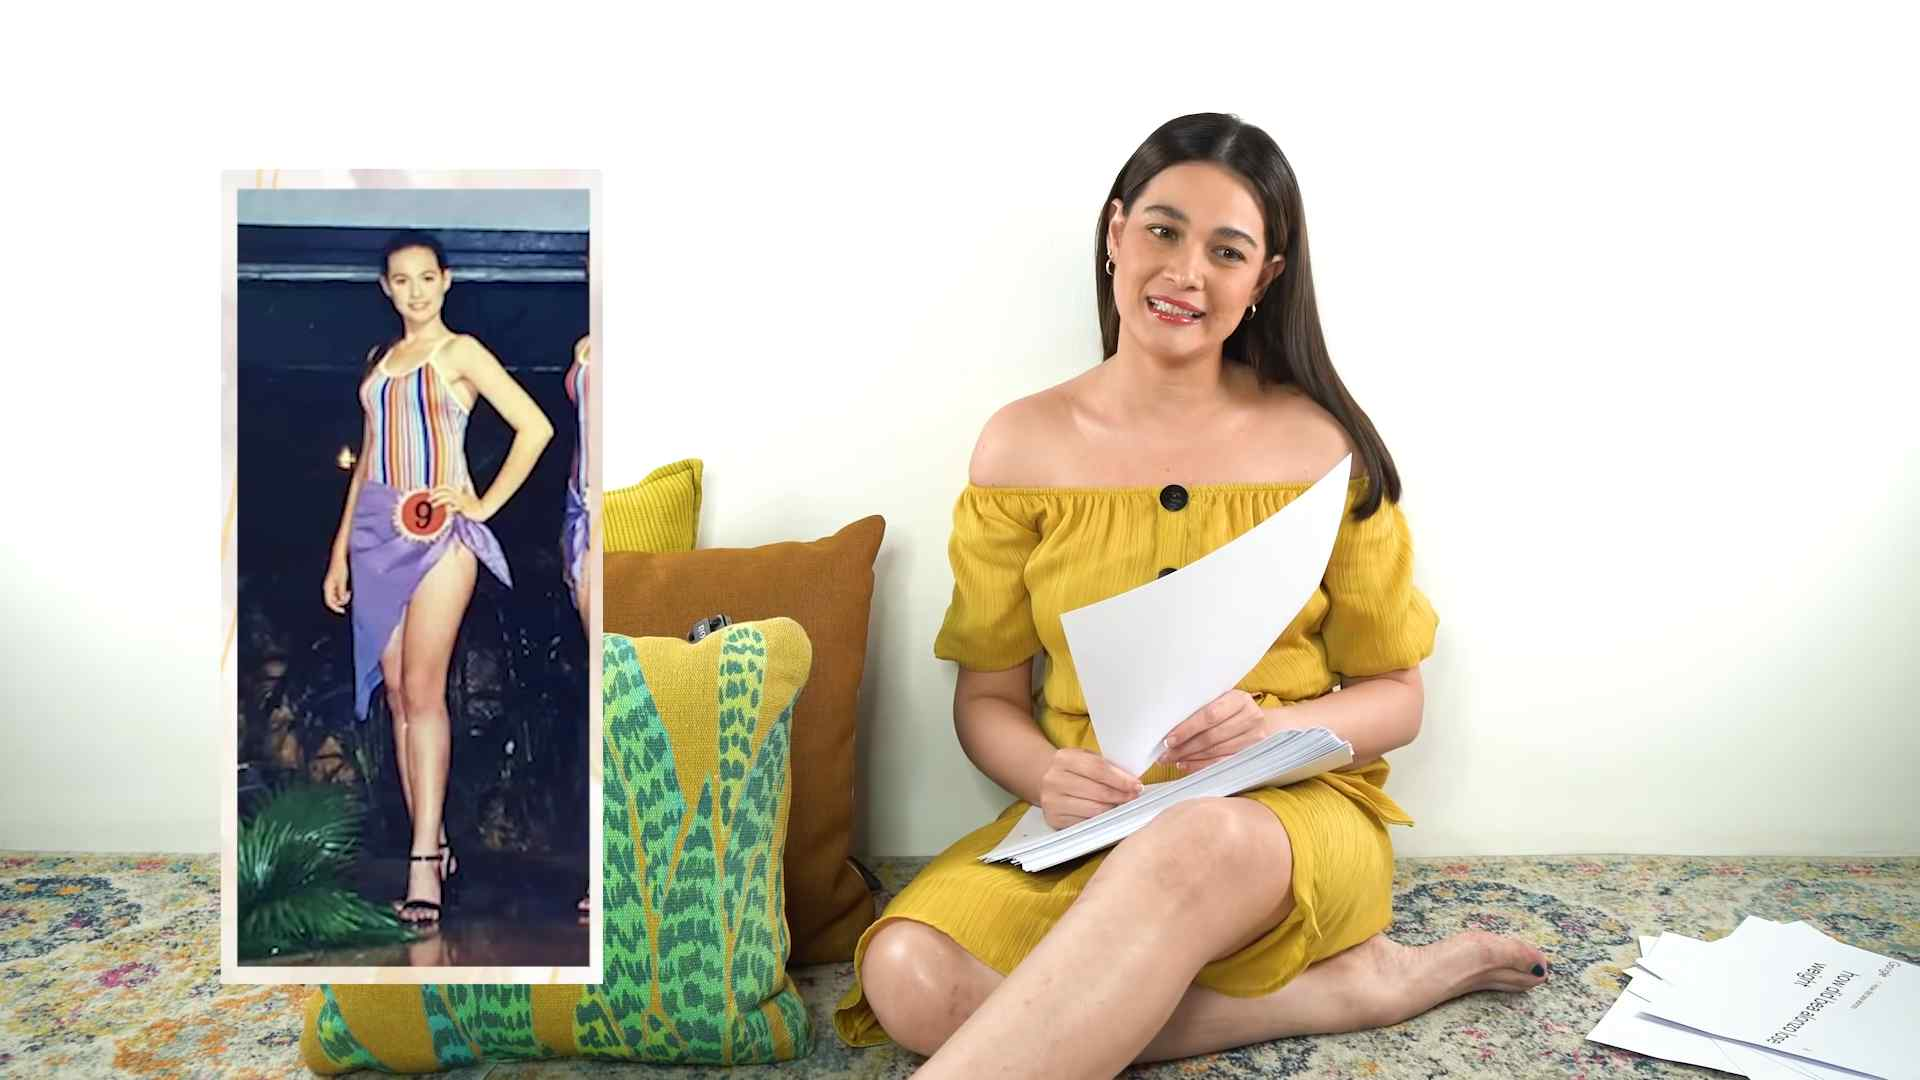 Bea also revealed that she was scouted in a beauty pageant back in 2001.